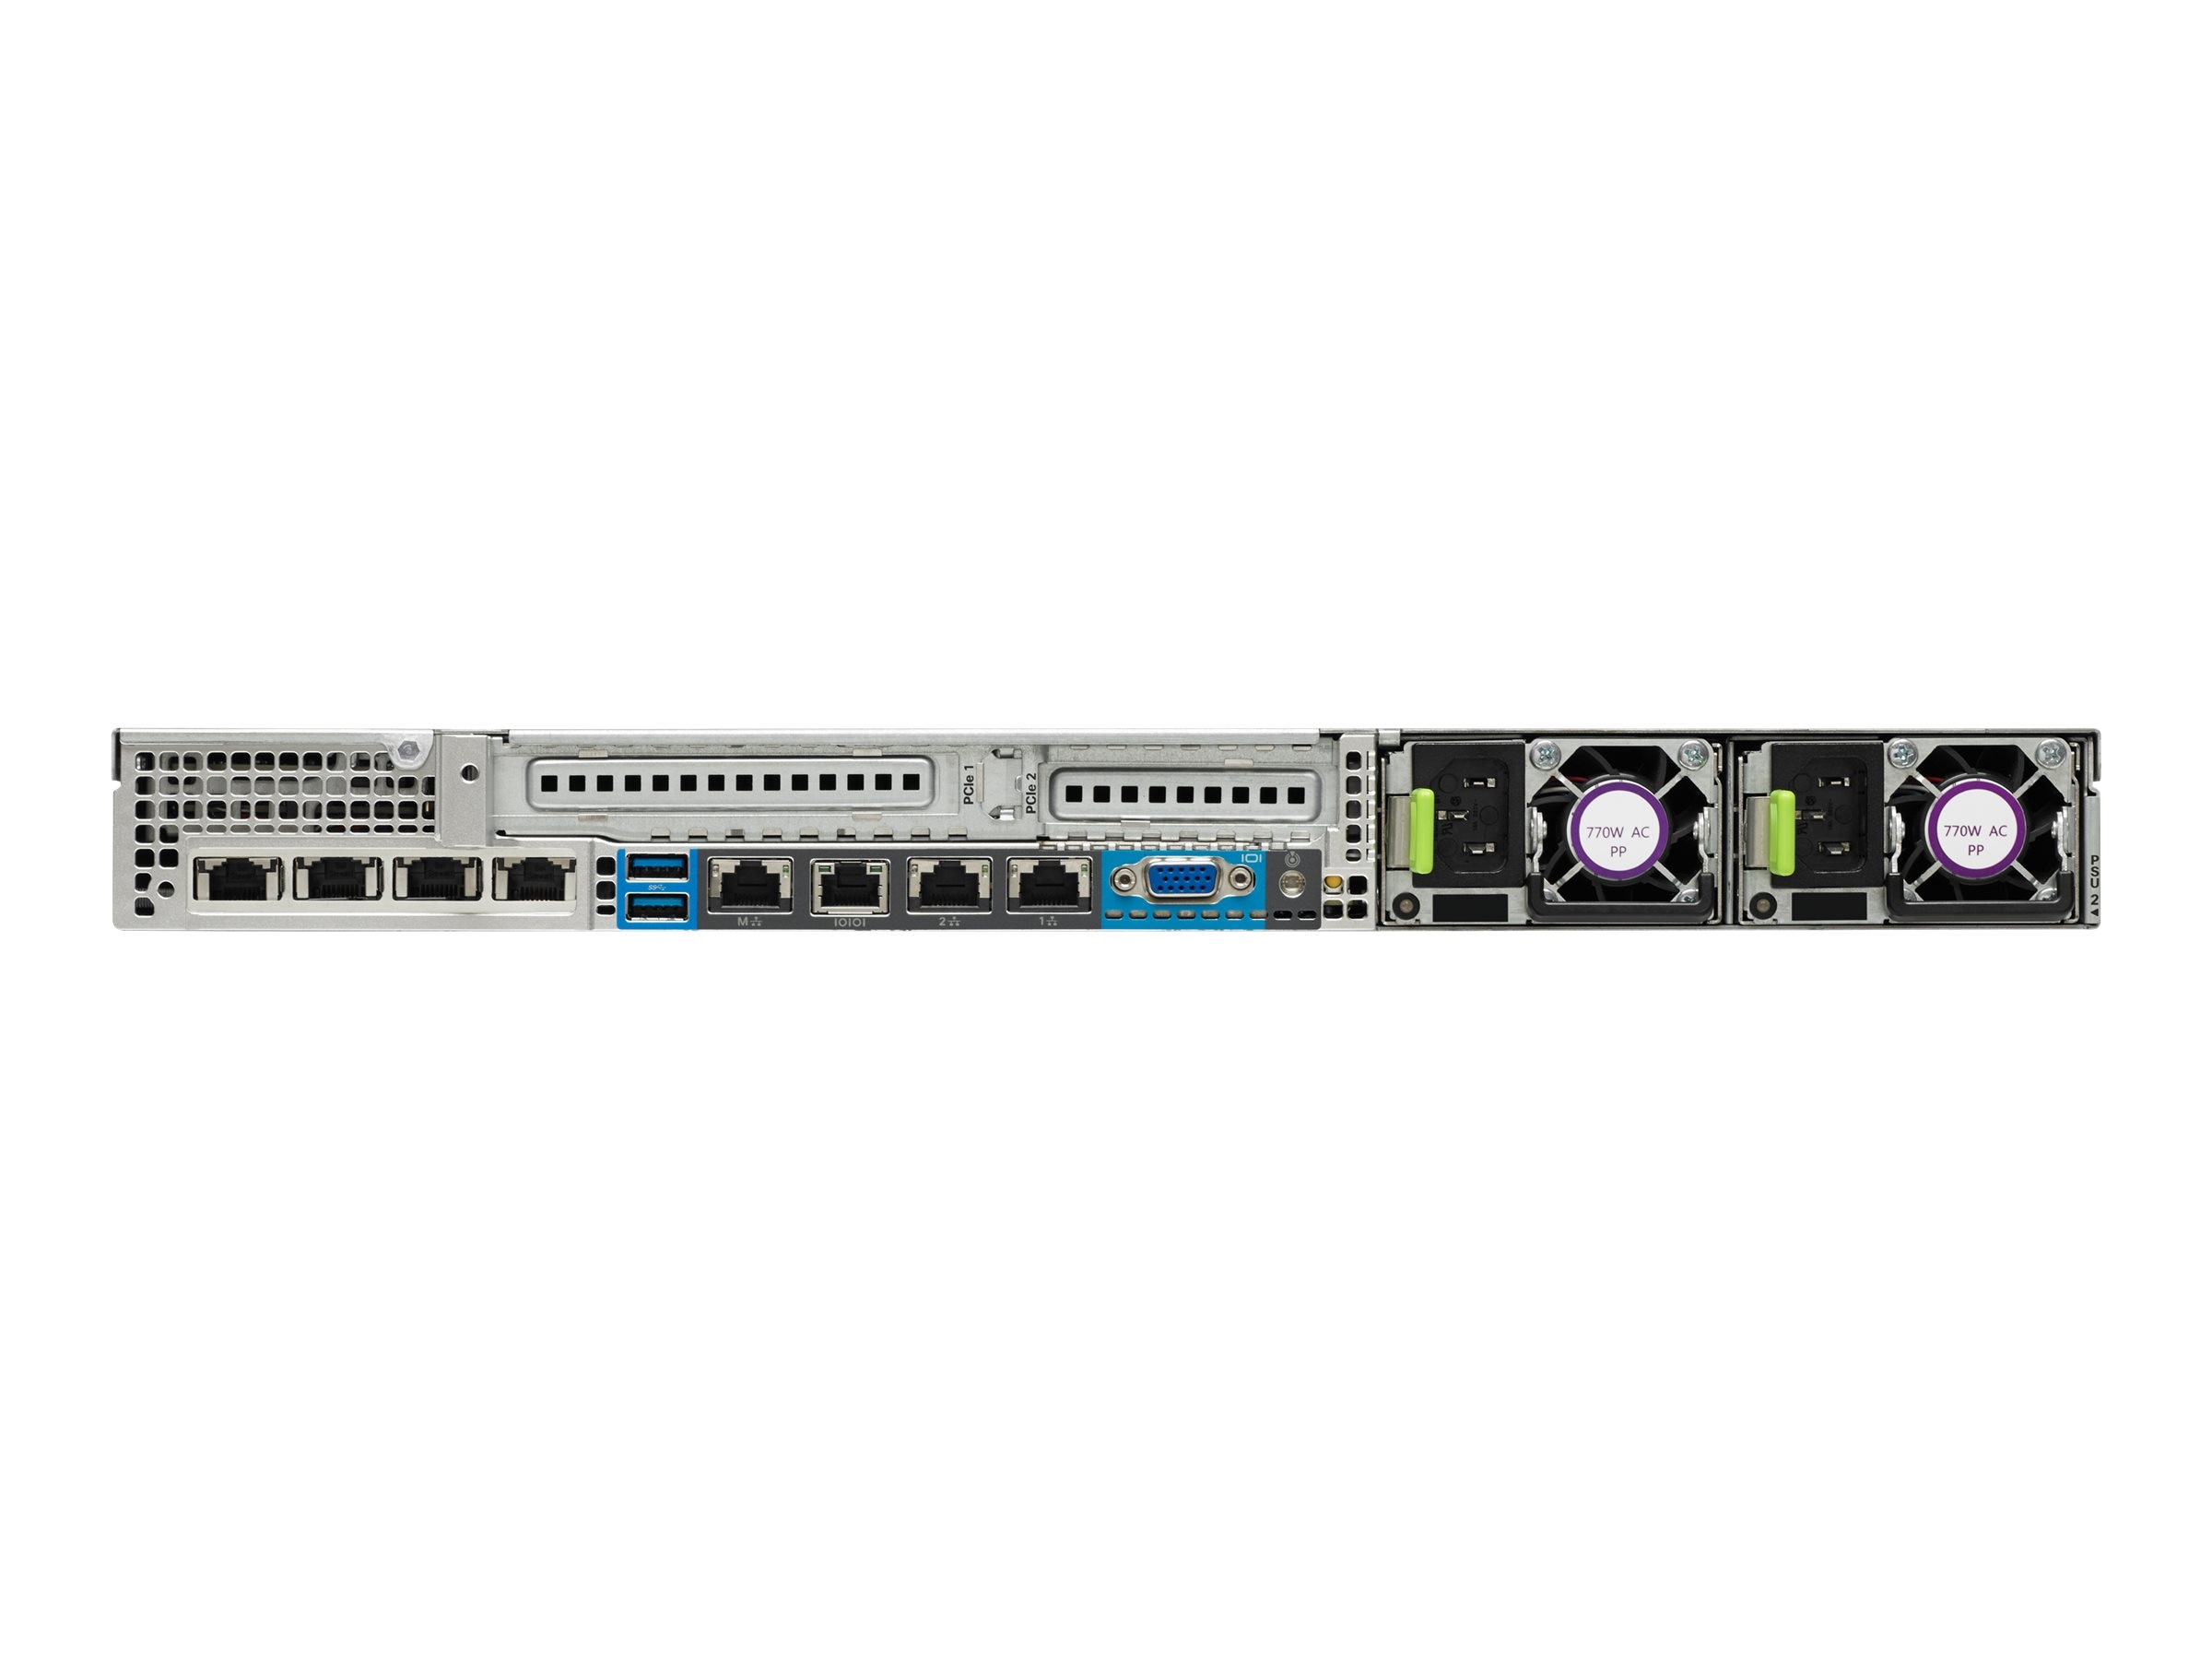 Cisco UCS-SPR-C220M4-BS2 Image 3